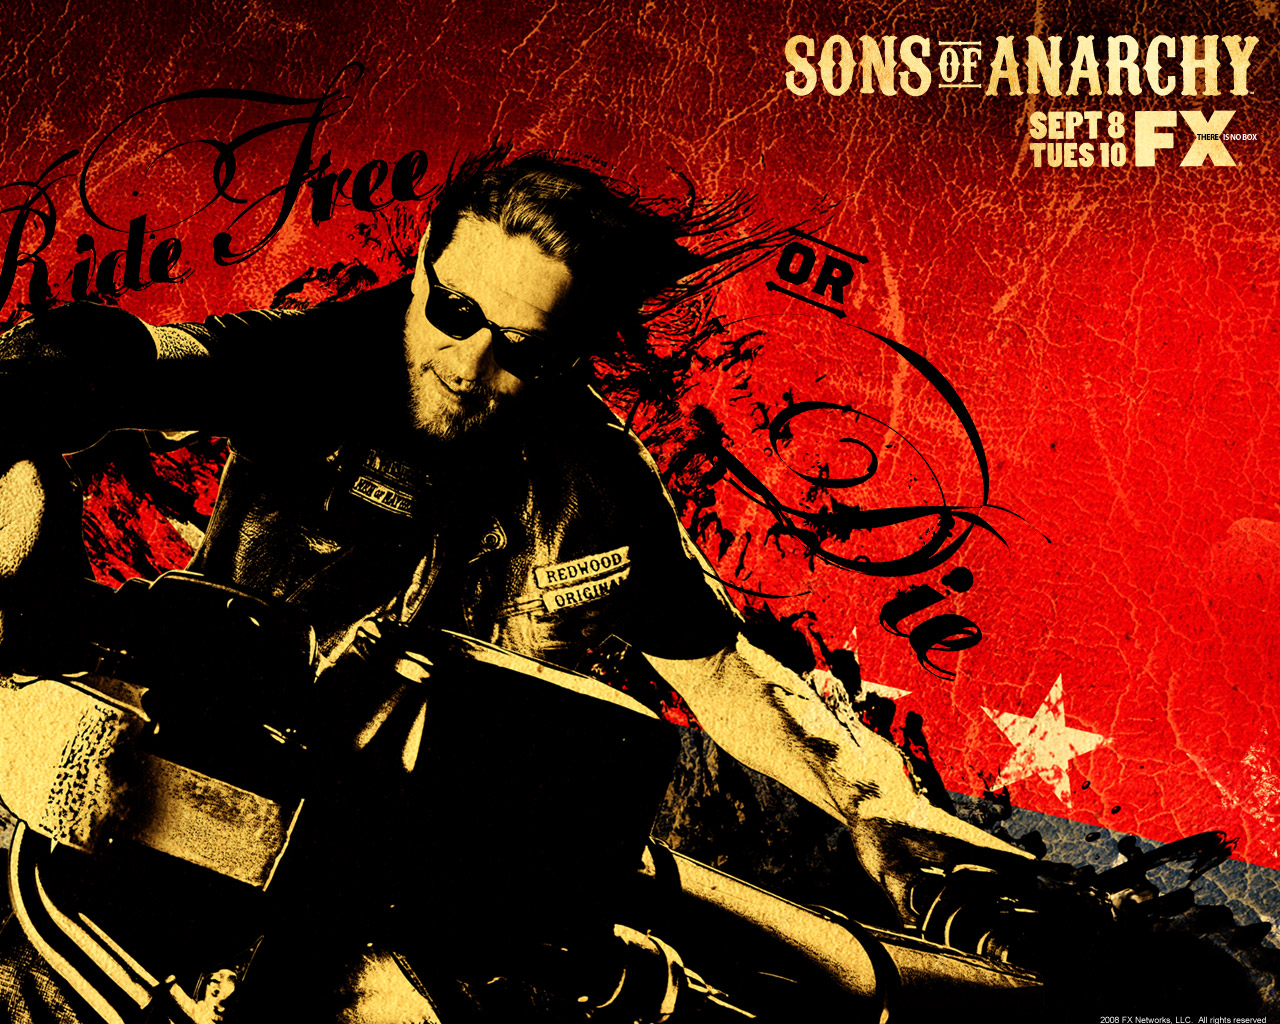 http://3.bp.blogspot.com/-J2Lo1C0Tku4/TaWsbgzyv3I/AAAAAAAAA2Q/Zm8siebqidg/s1600/sons-of-anarchy-tv-show-wallpaper-14.jpg